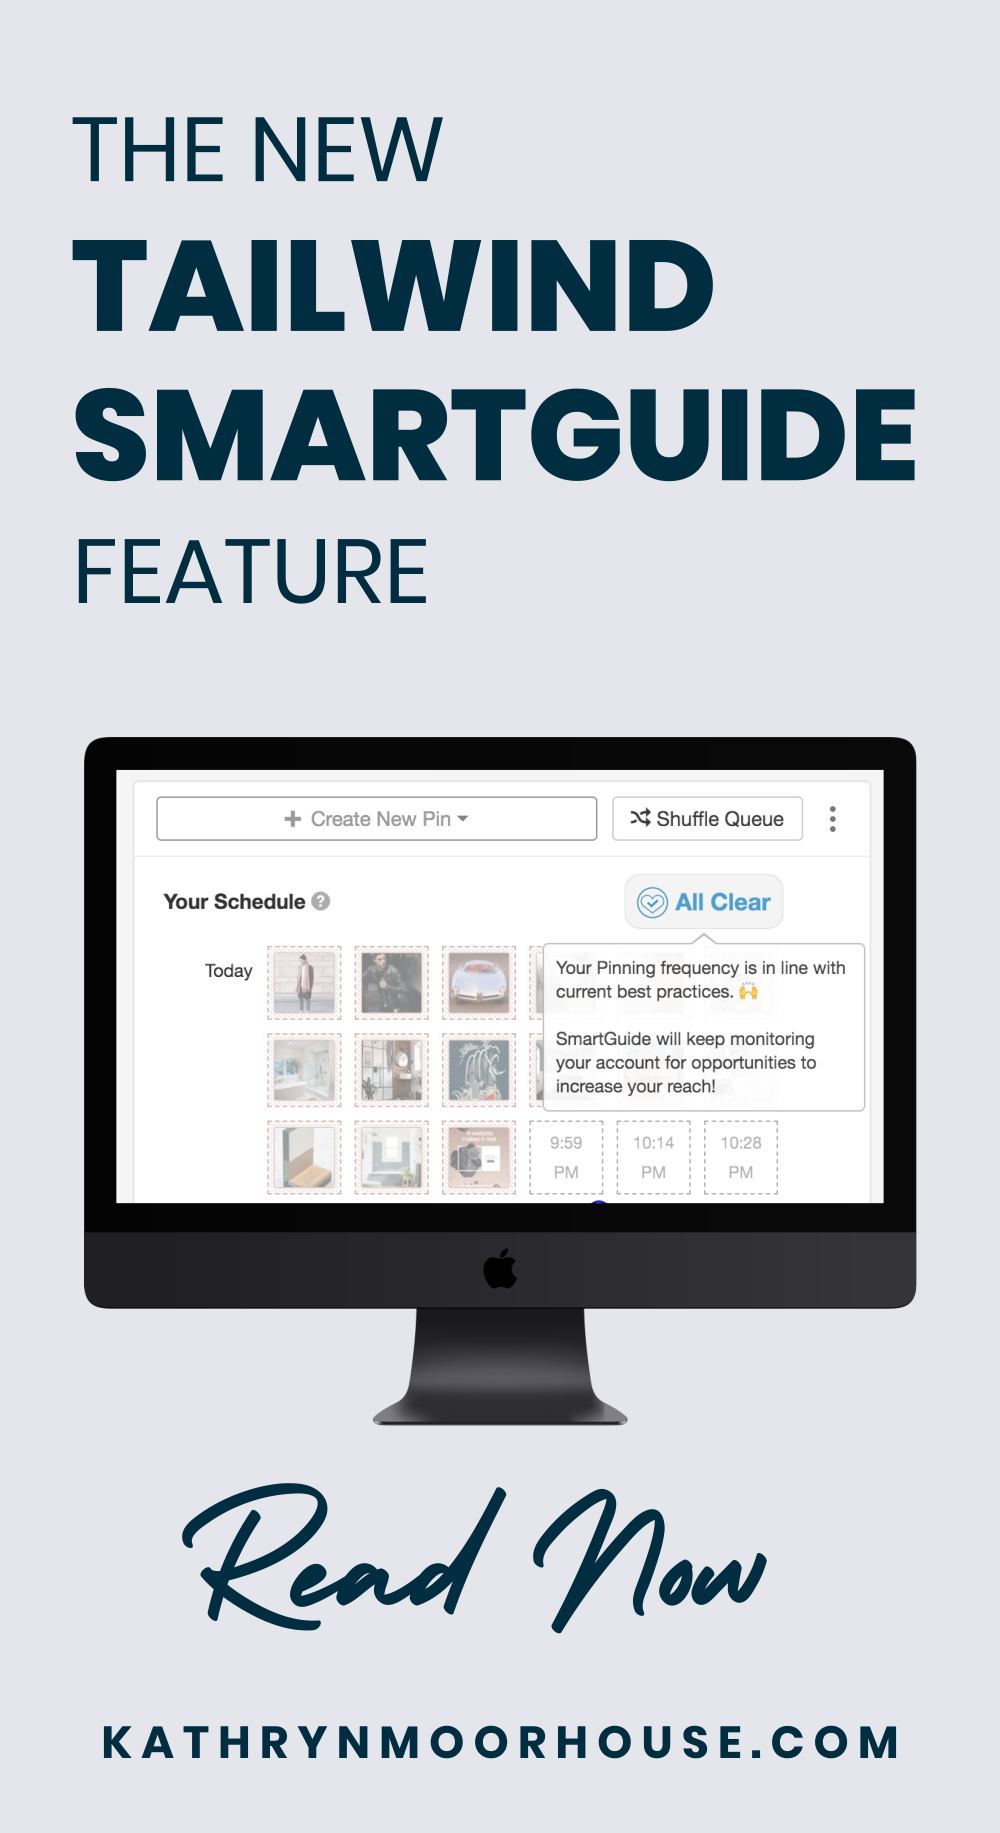 the new Tailwind Smarguide feature